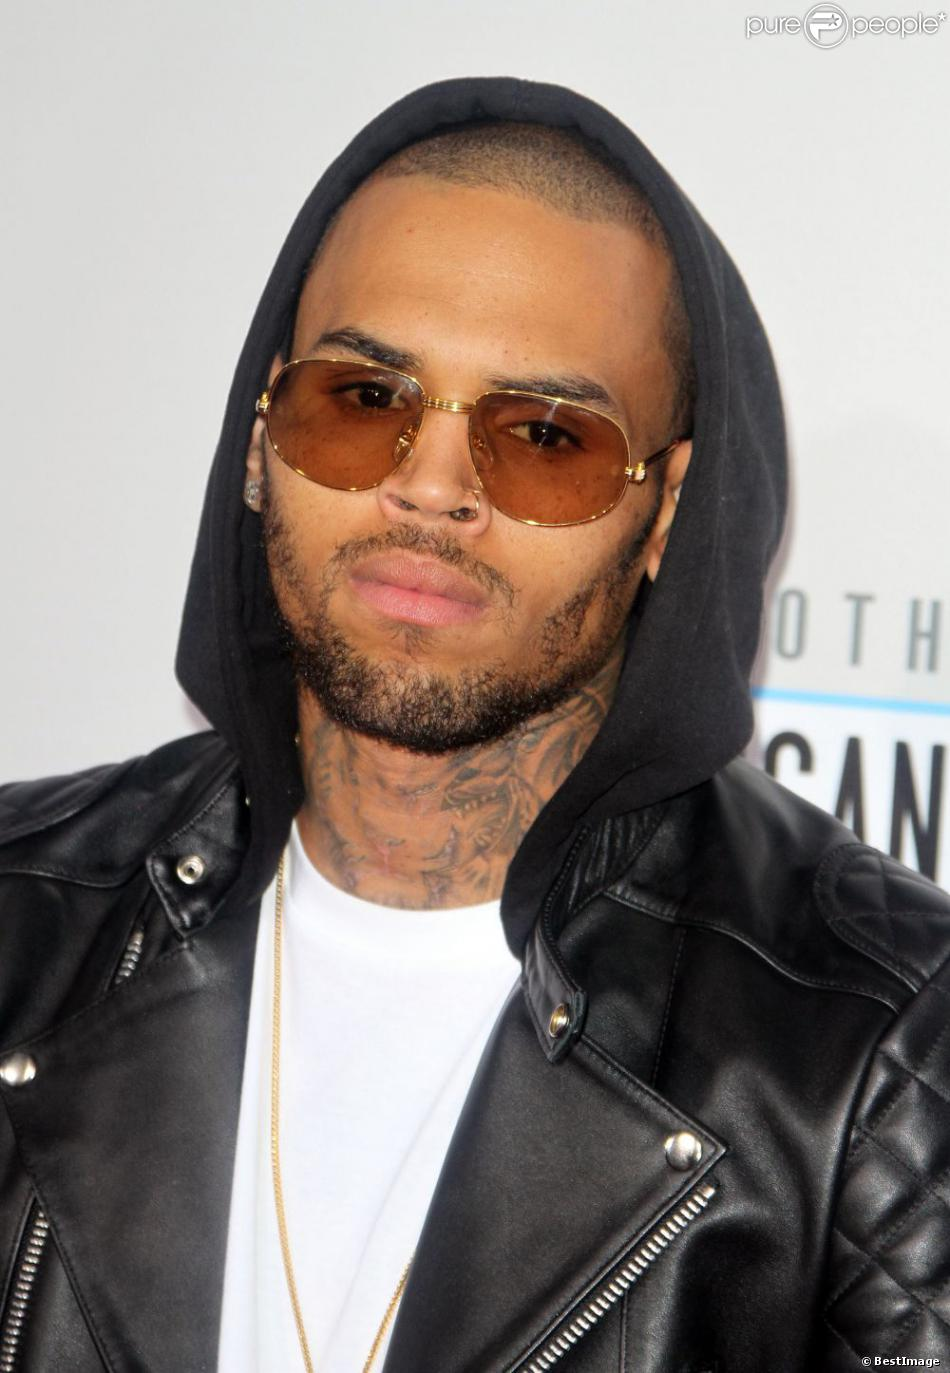 Chris Brown lors des American Music Awards au Nokia Theater à Los